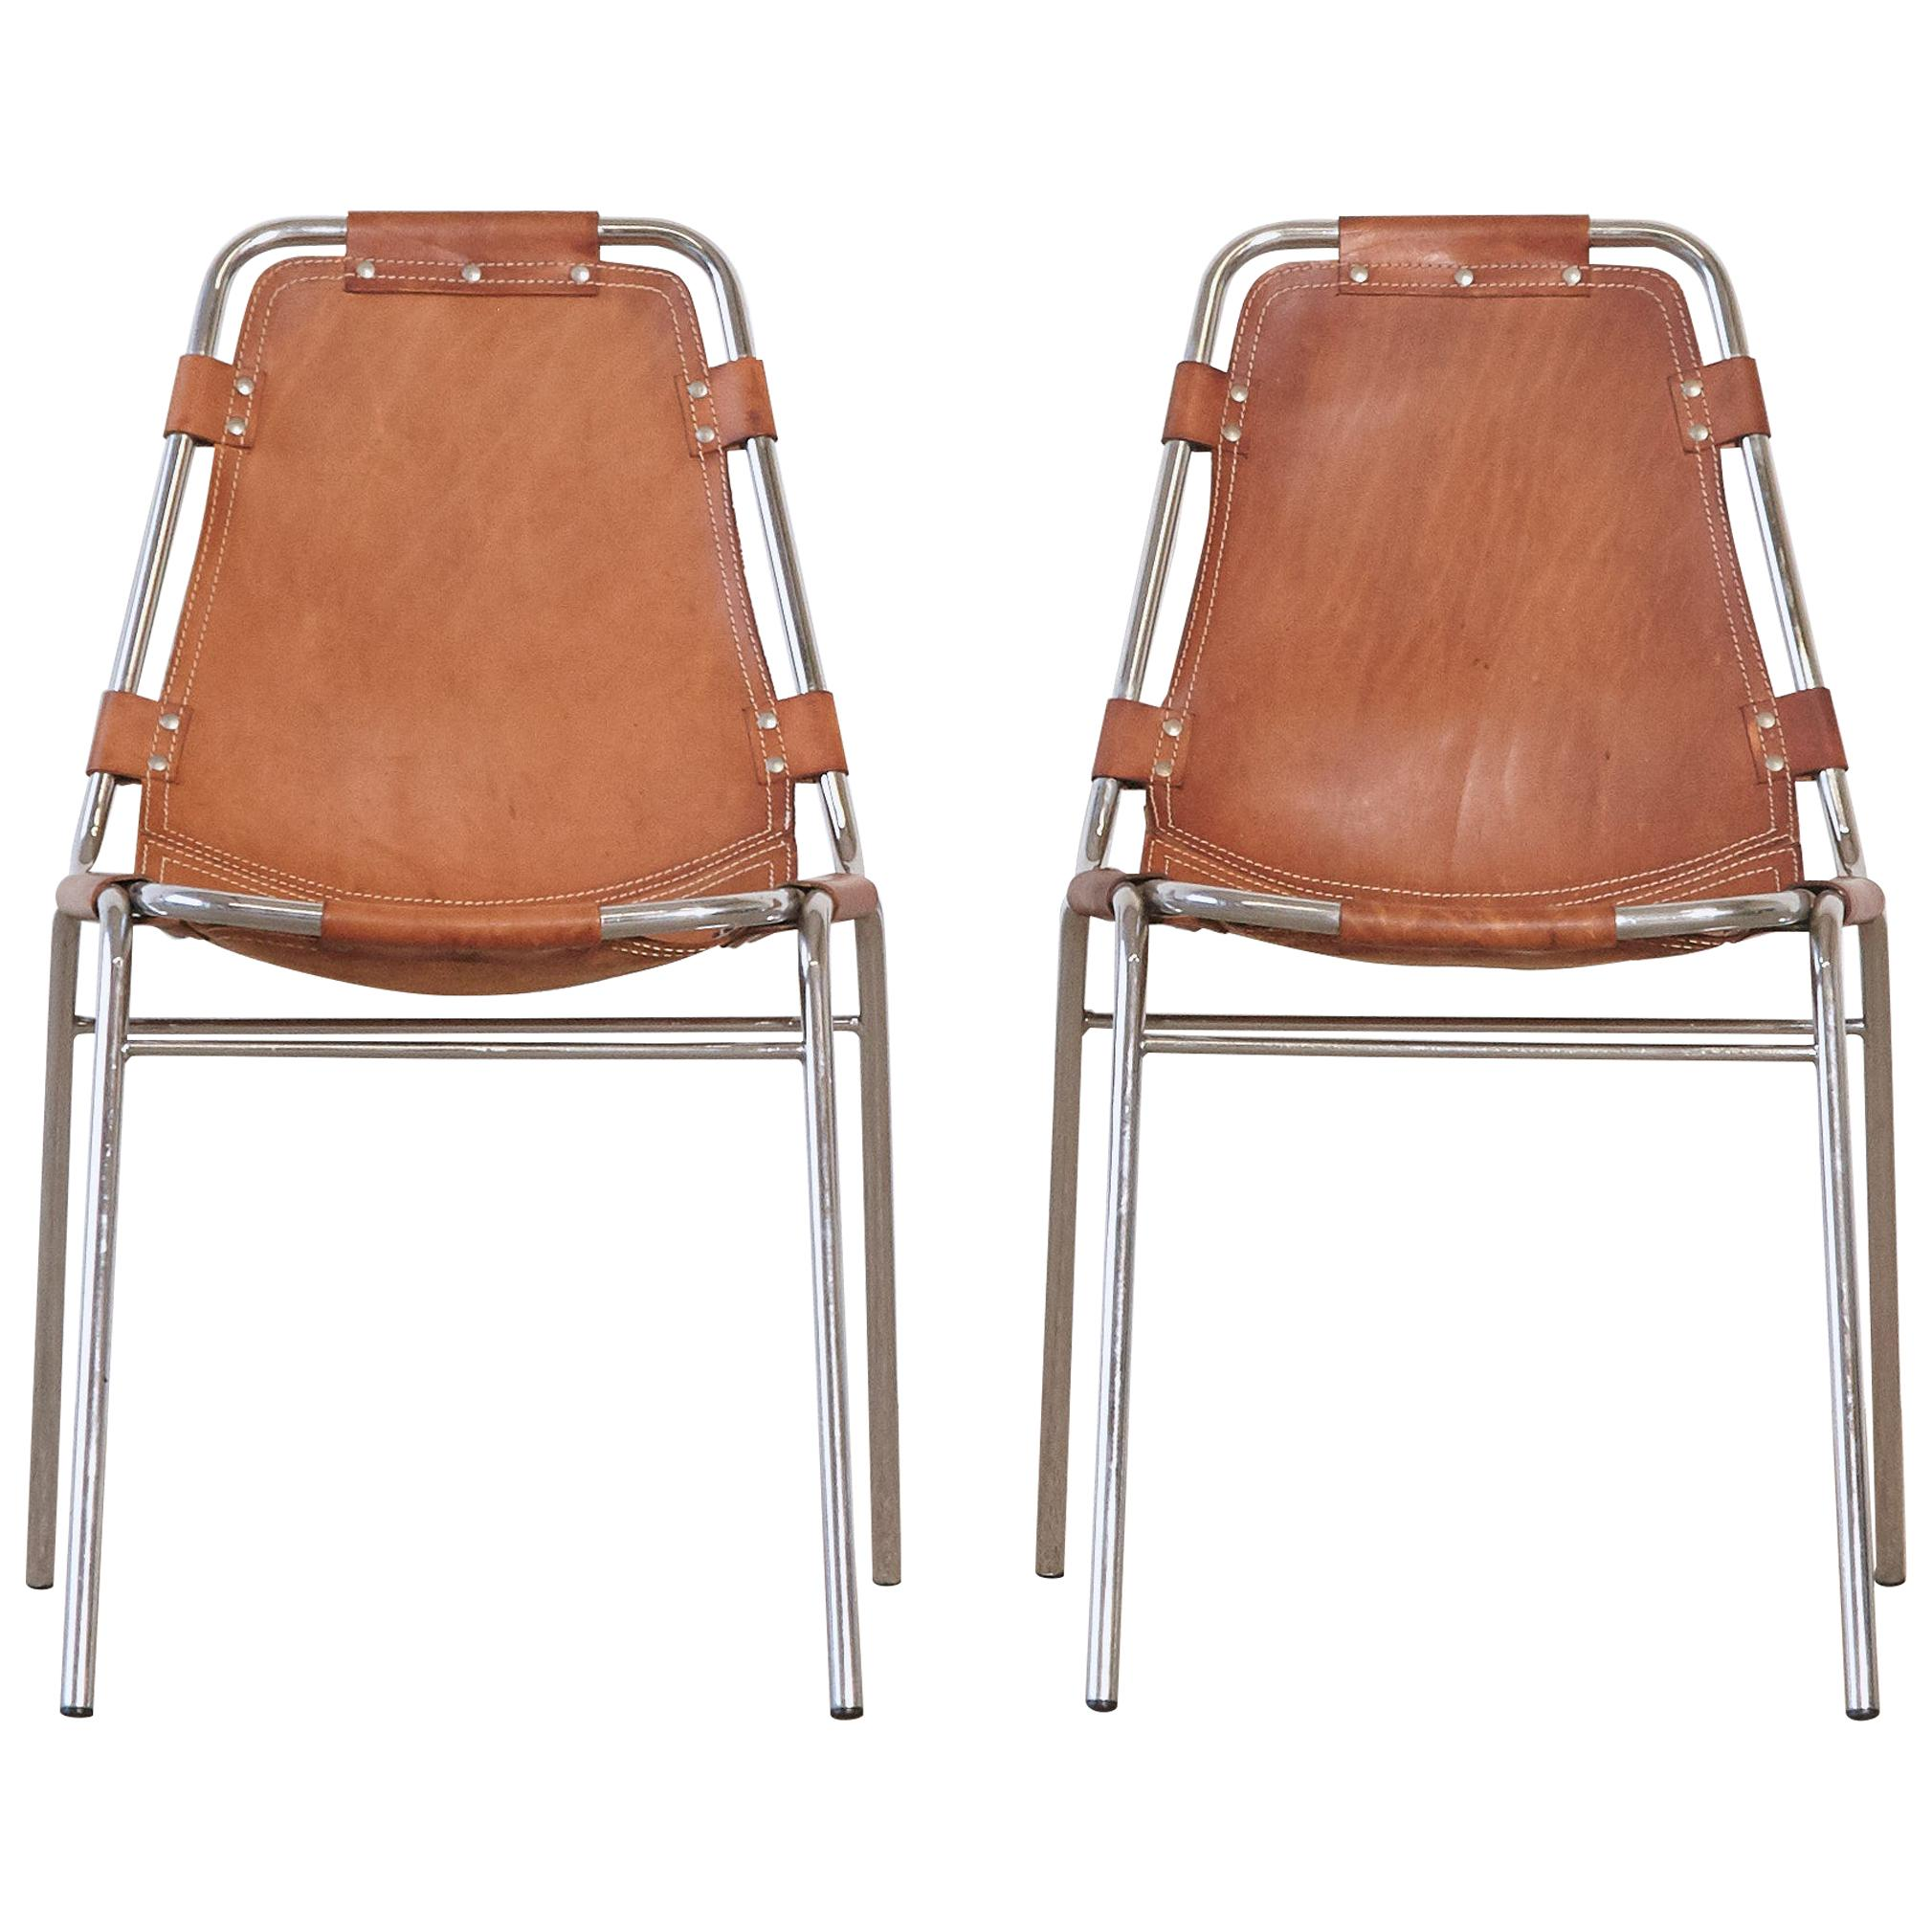 Pair of 'Les Arcs' Chairs Selected by Charlotte Perriand, 1970s